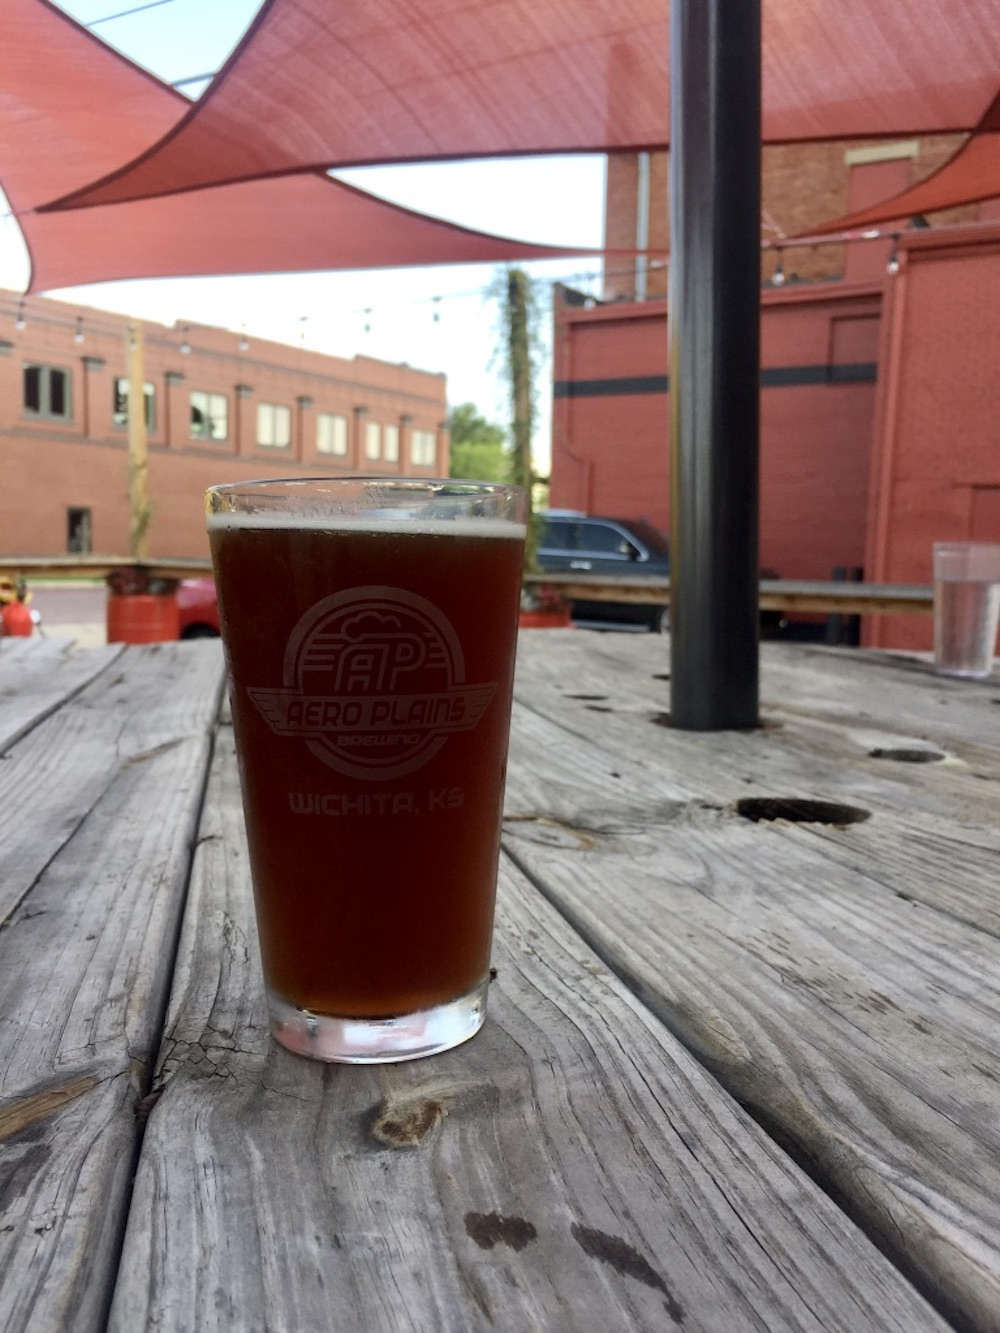 Pint of beer on the patio of AeroPlains Brewery in Wichita, Kansas